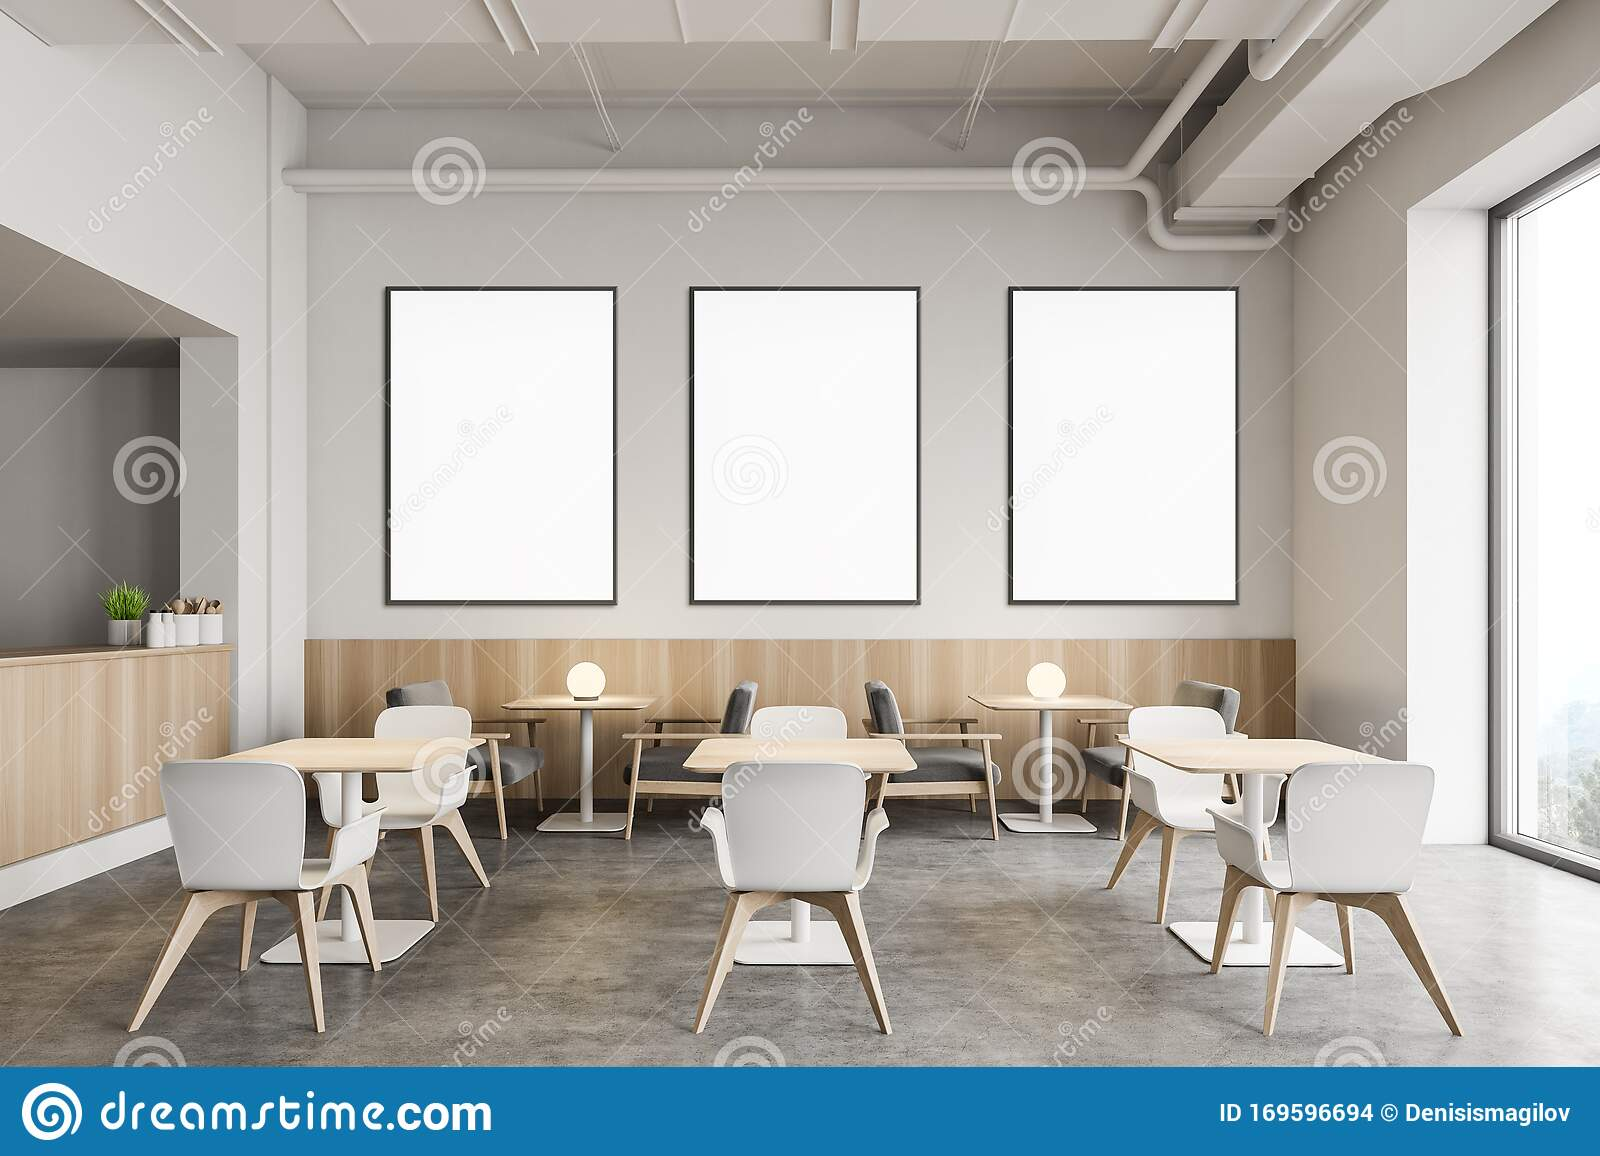 Stylish Industrial Style Restaurant With Posters Stock Illustration Illustration Of Cafe Copy 169596694